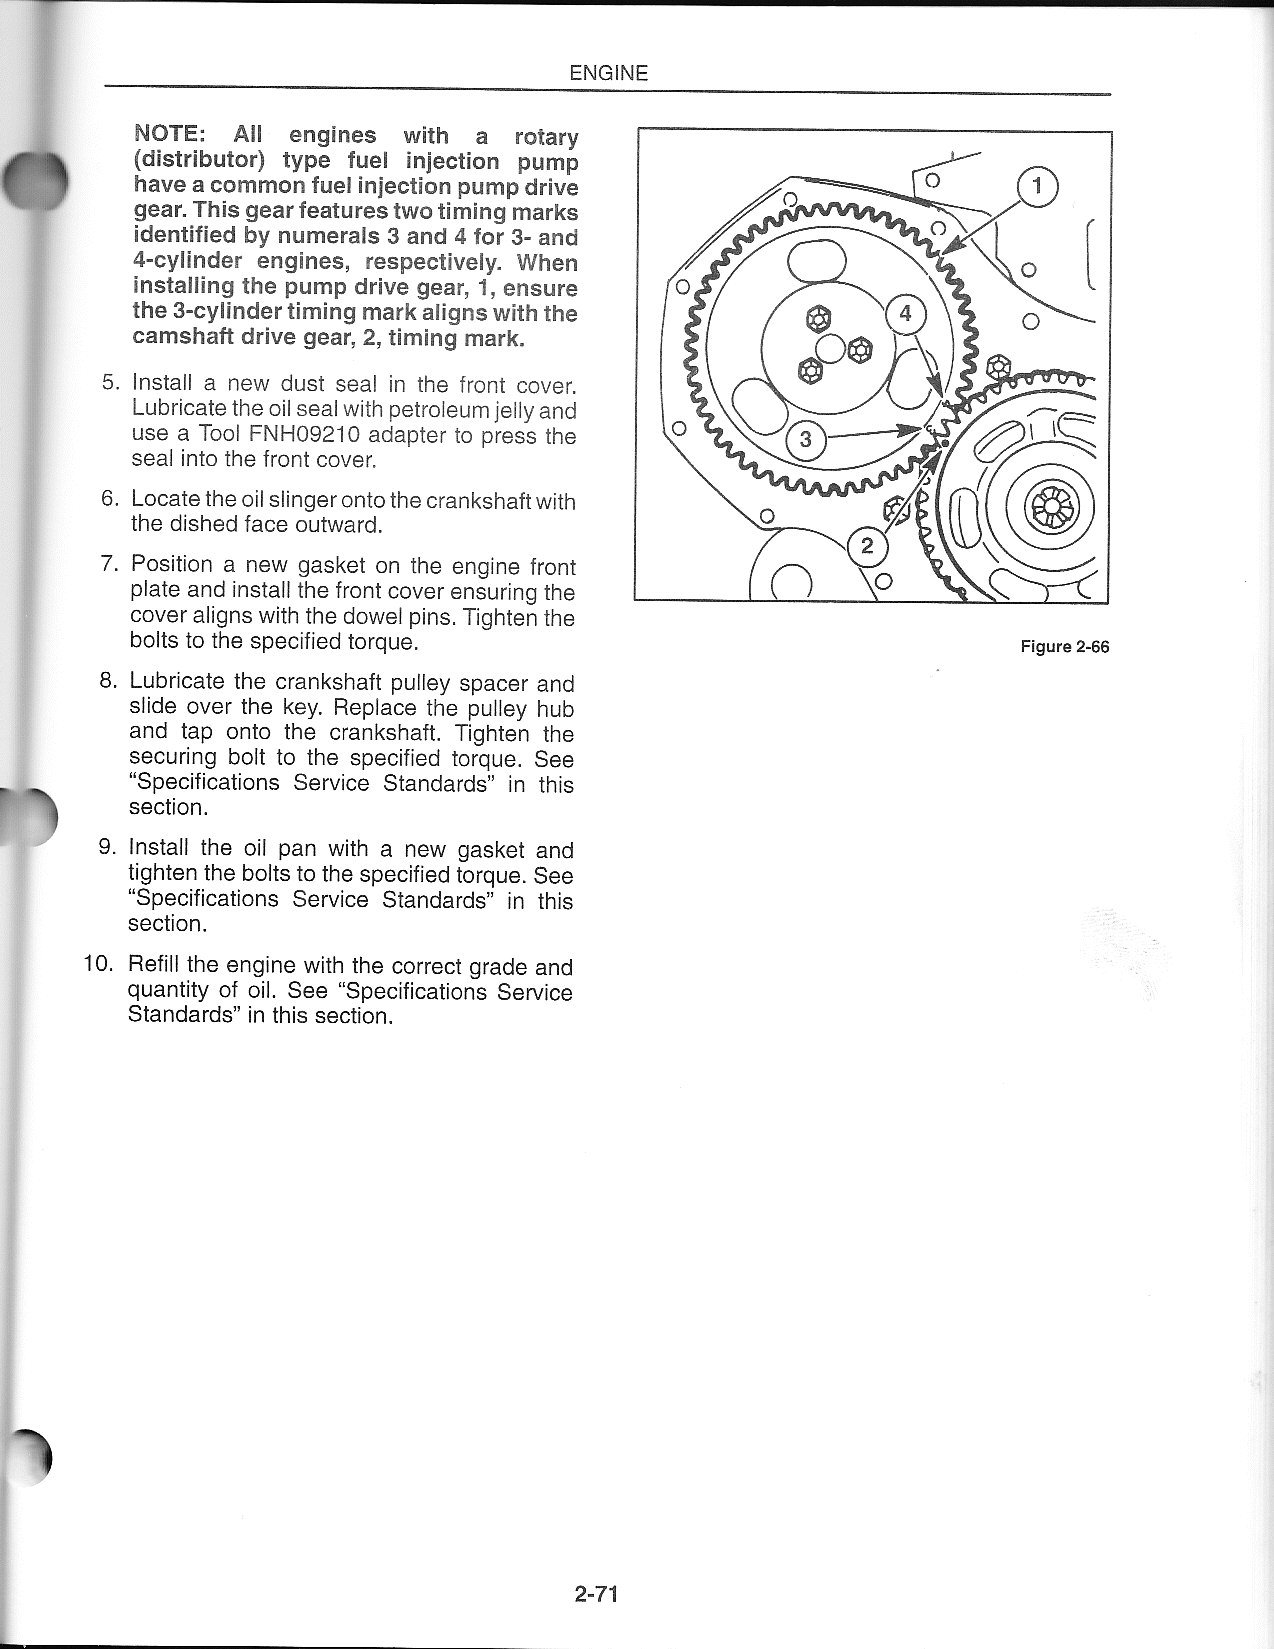 New Holland Ls180 Injection Pump Diagram Electrical Wiring Cav Fuel How I Can Pulled Out The For Machine L180 Rh Justanswer Com Ford 4000 Diesel Injector Parts